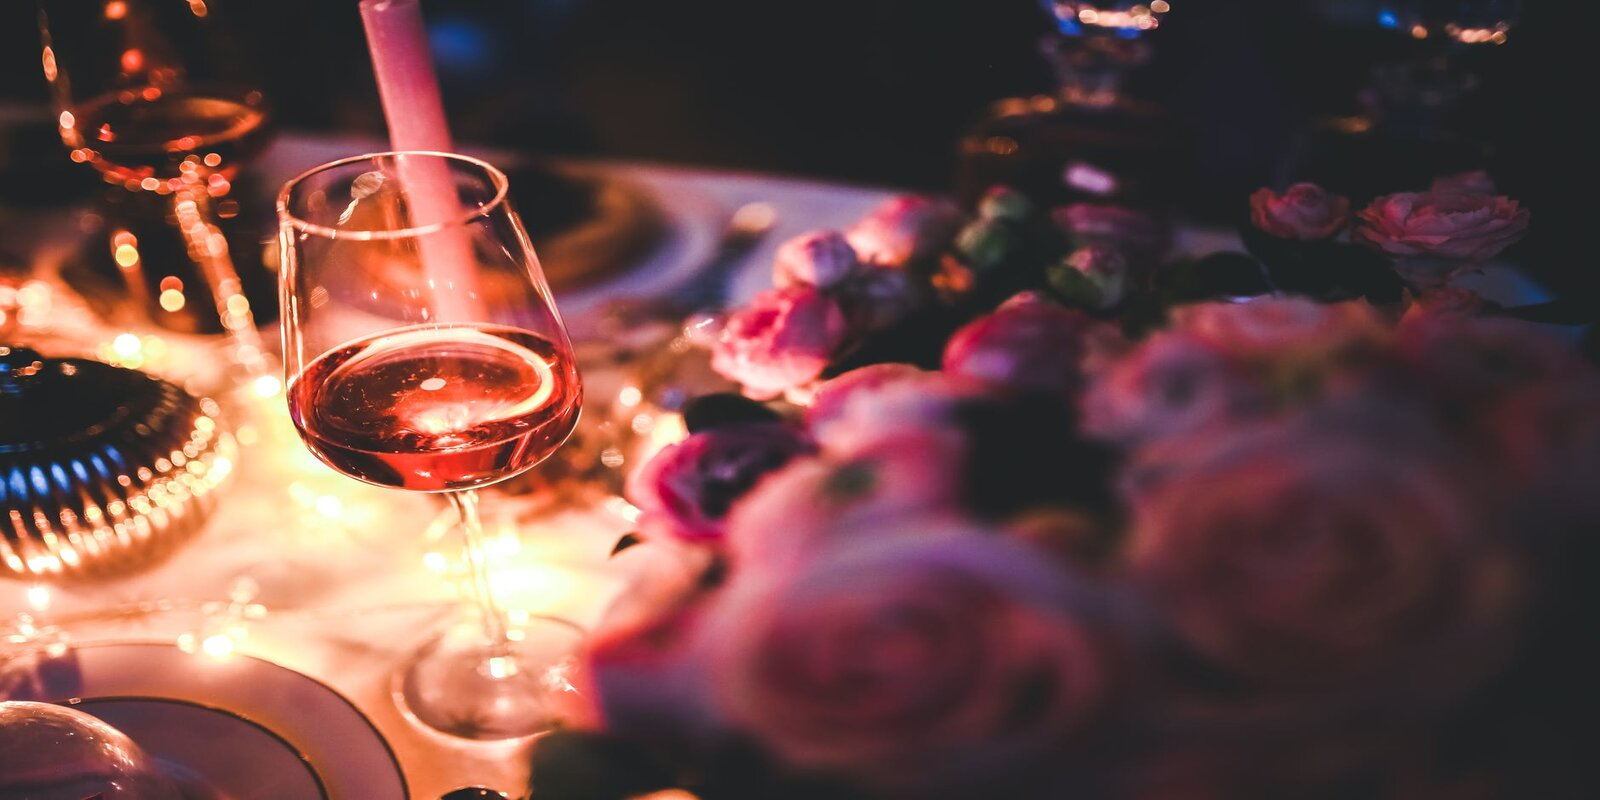 CELEBRATE VALENTINE'S DAY WITH THE NEW ZEALAND HOUSE OF WINE